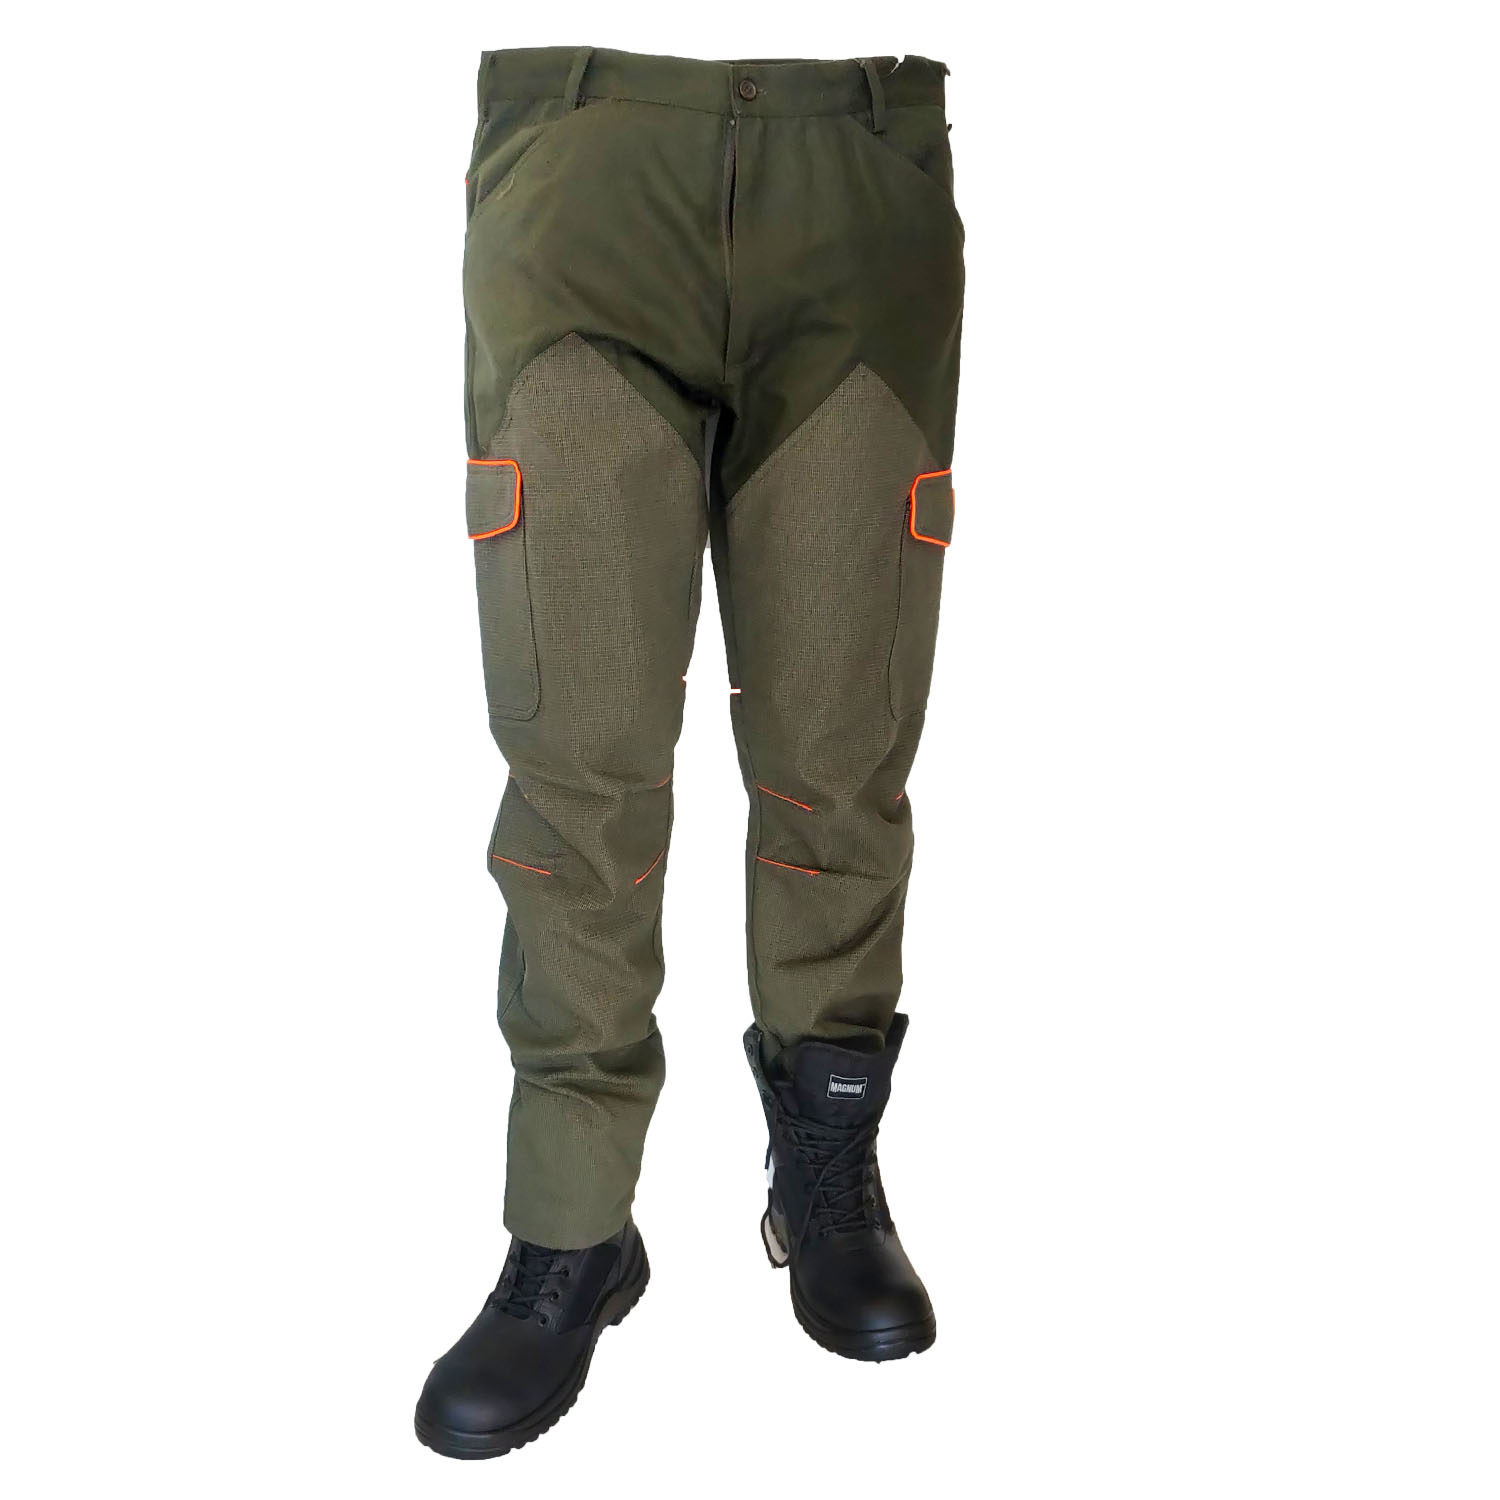 Trousers cotton, kevlar trousers, hunting tear-proof, waterproof man